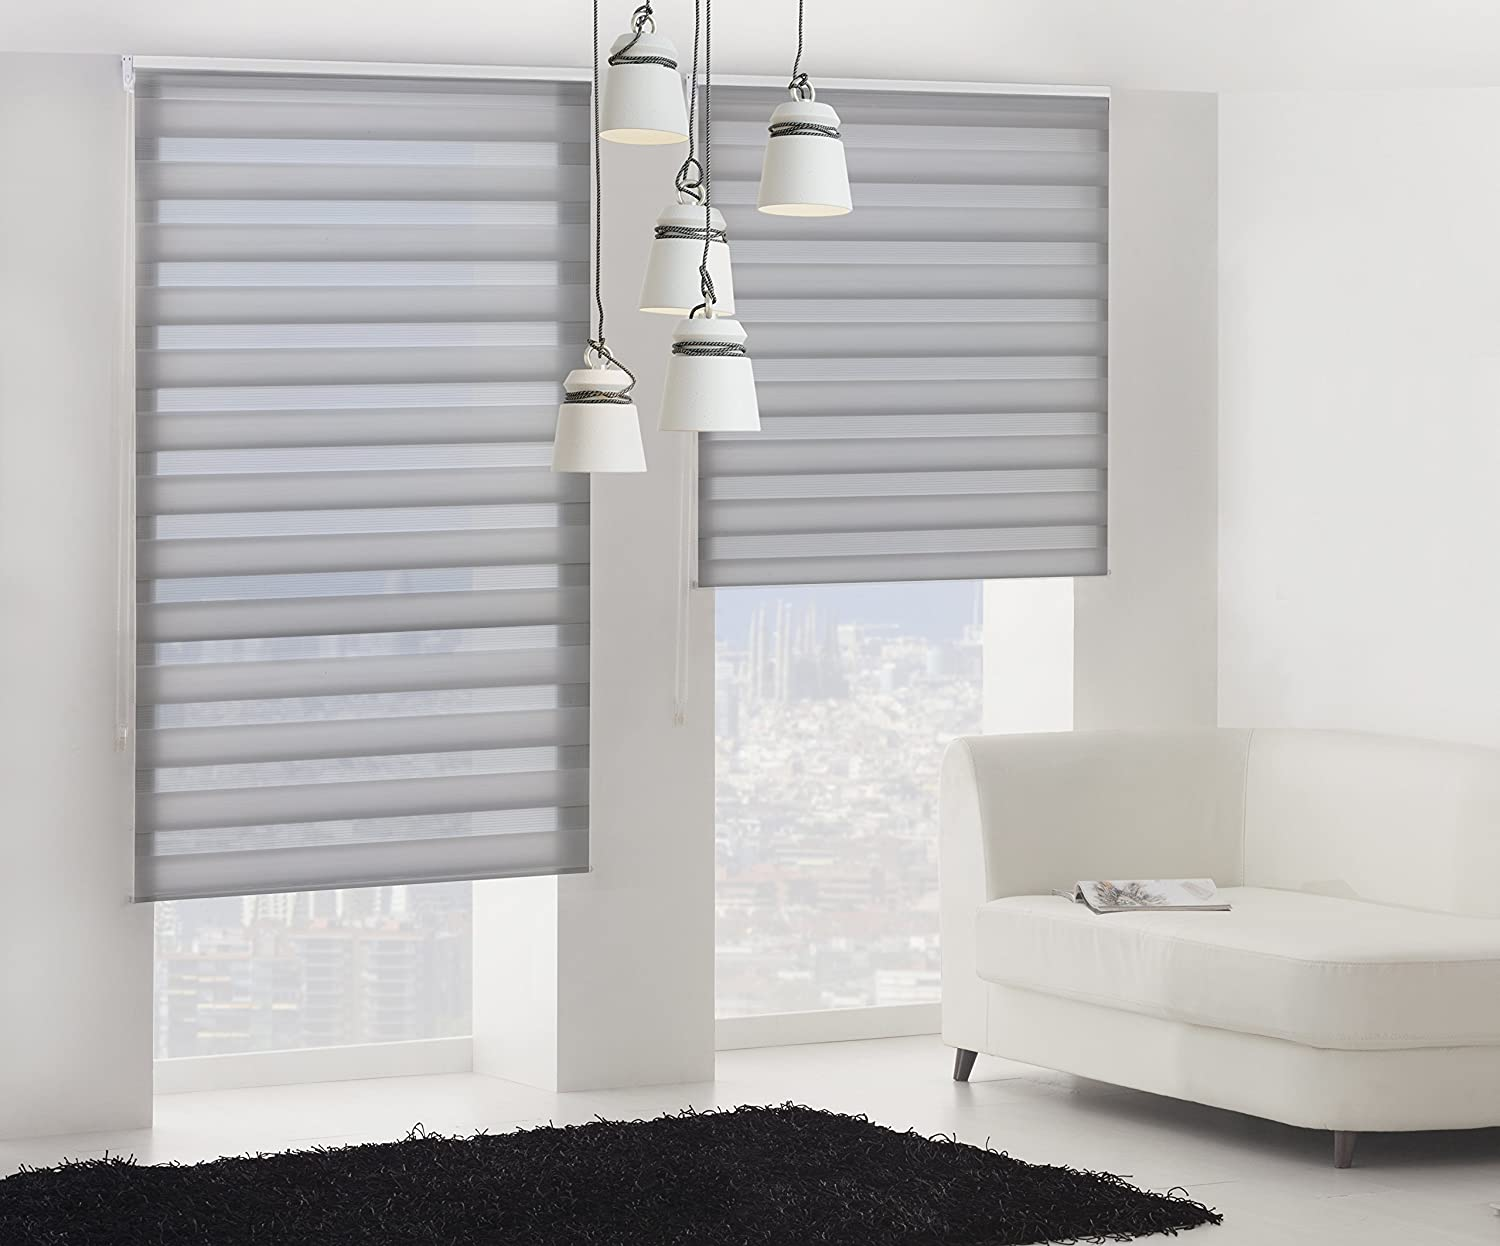 100x180cm Double layered roller blind Beige width x height Blindecor Lira Waves Night and Day